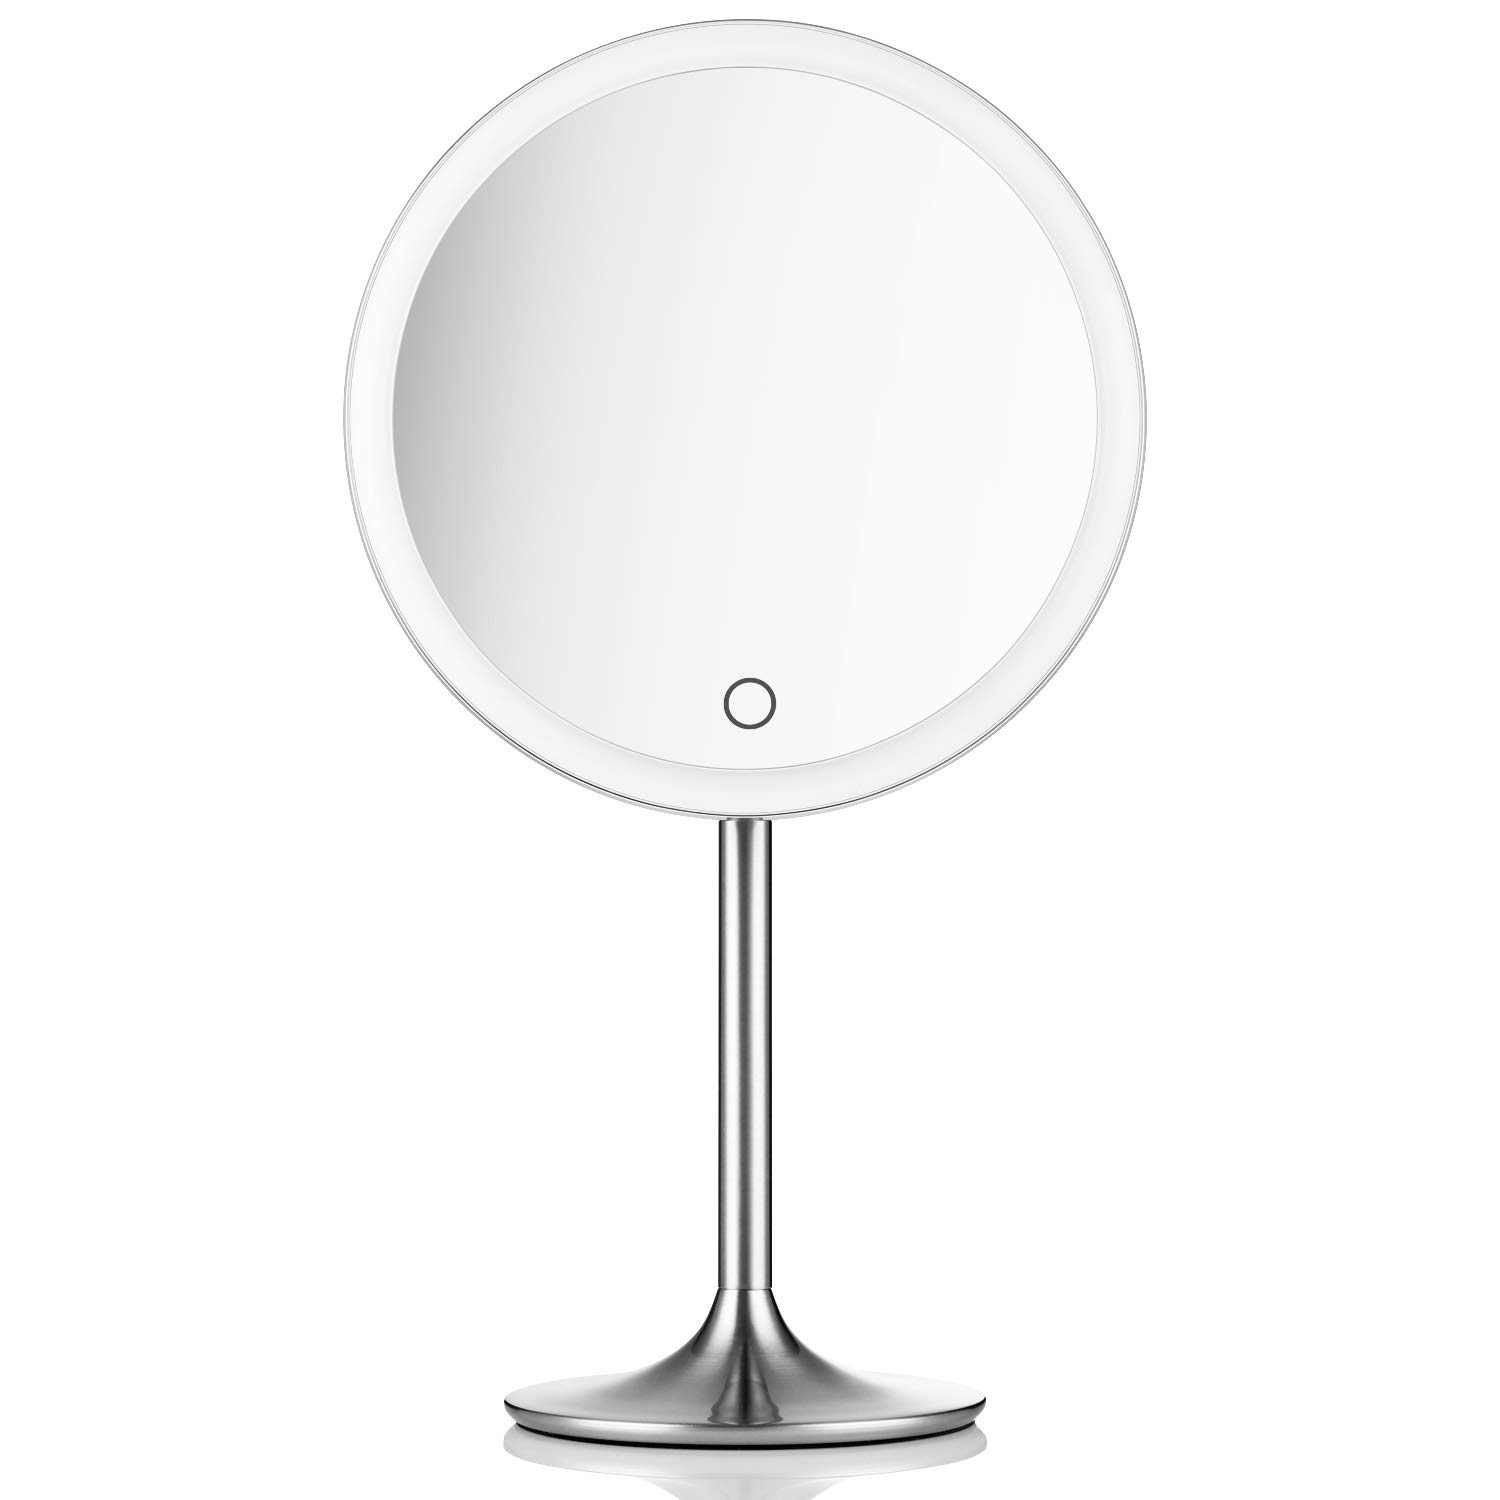 Lighted Makeup Mirror.Miusco 9 Lighted Makeup Mirror Pro 5x 10x Magnification Ultra Bright Hd Lighting System